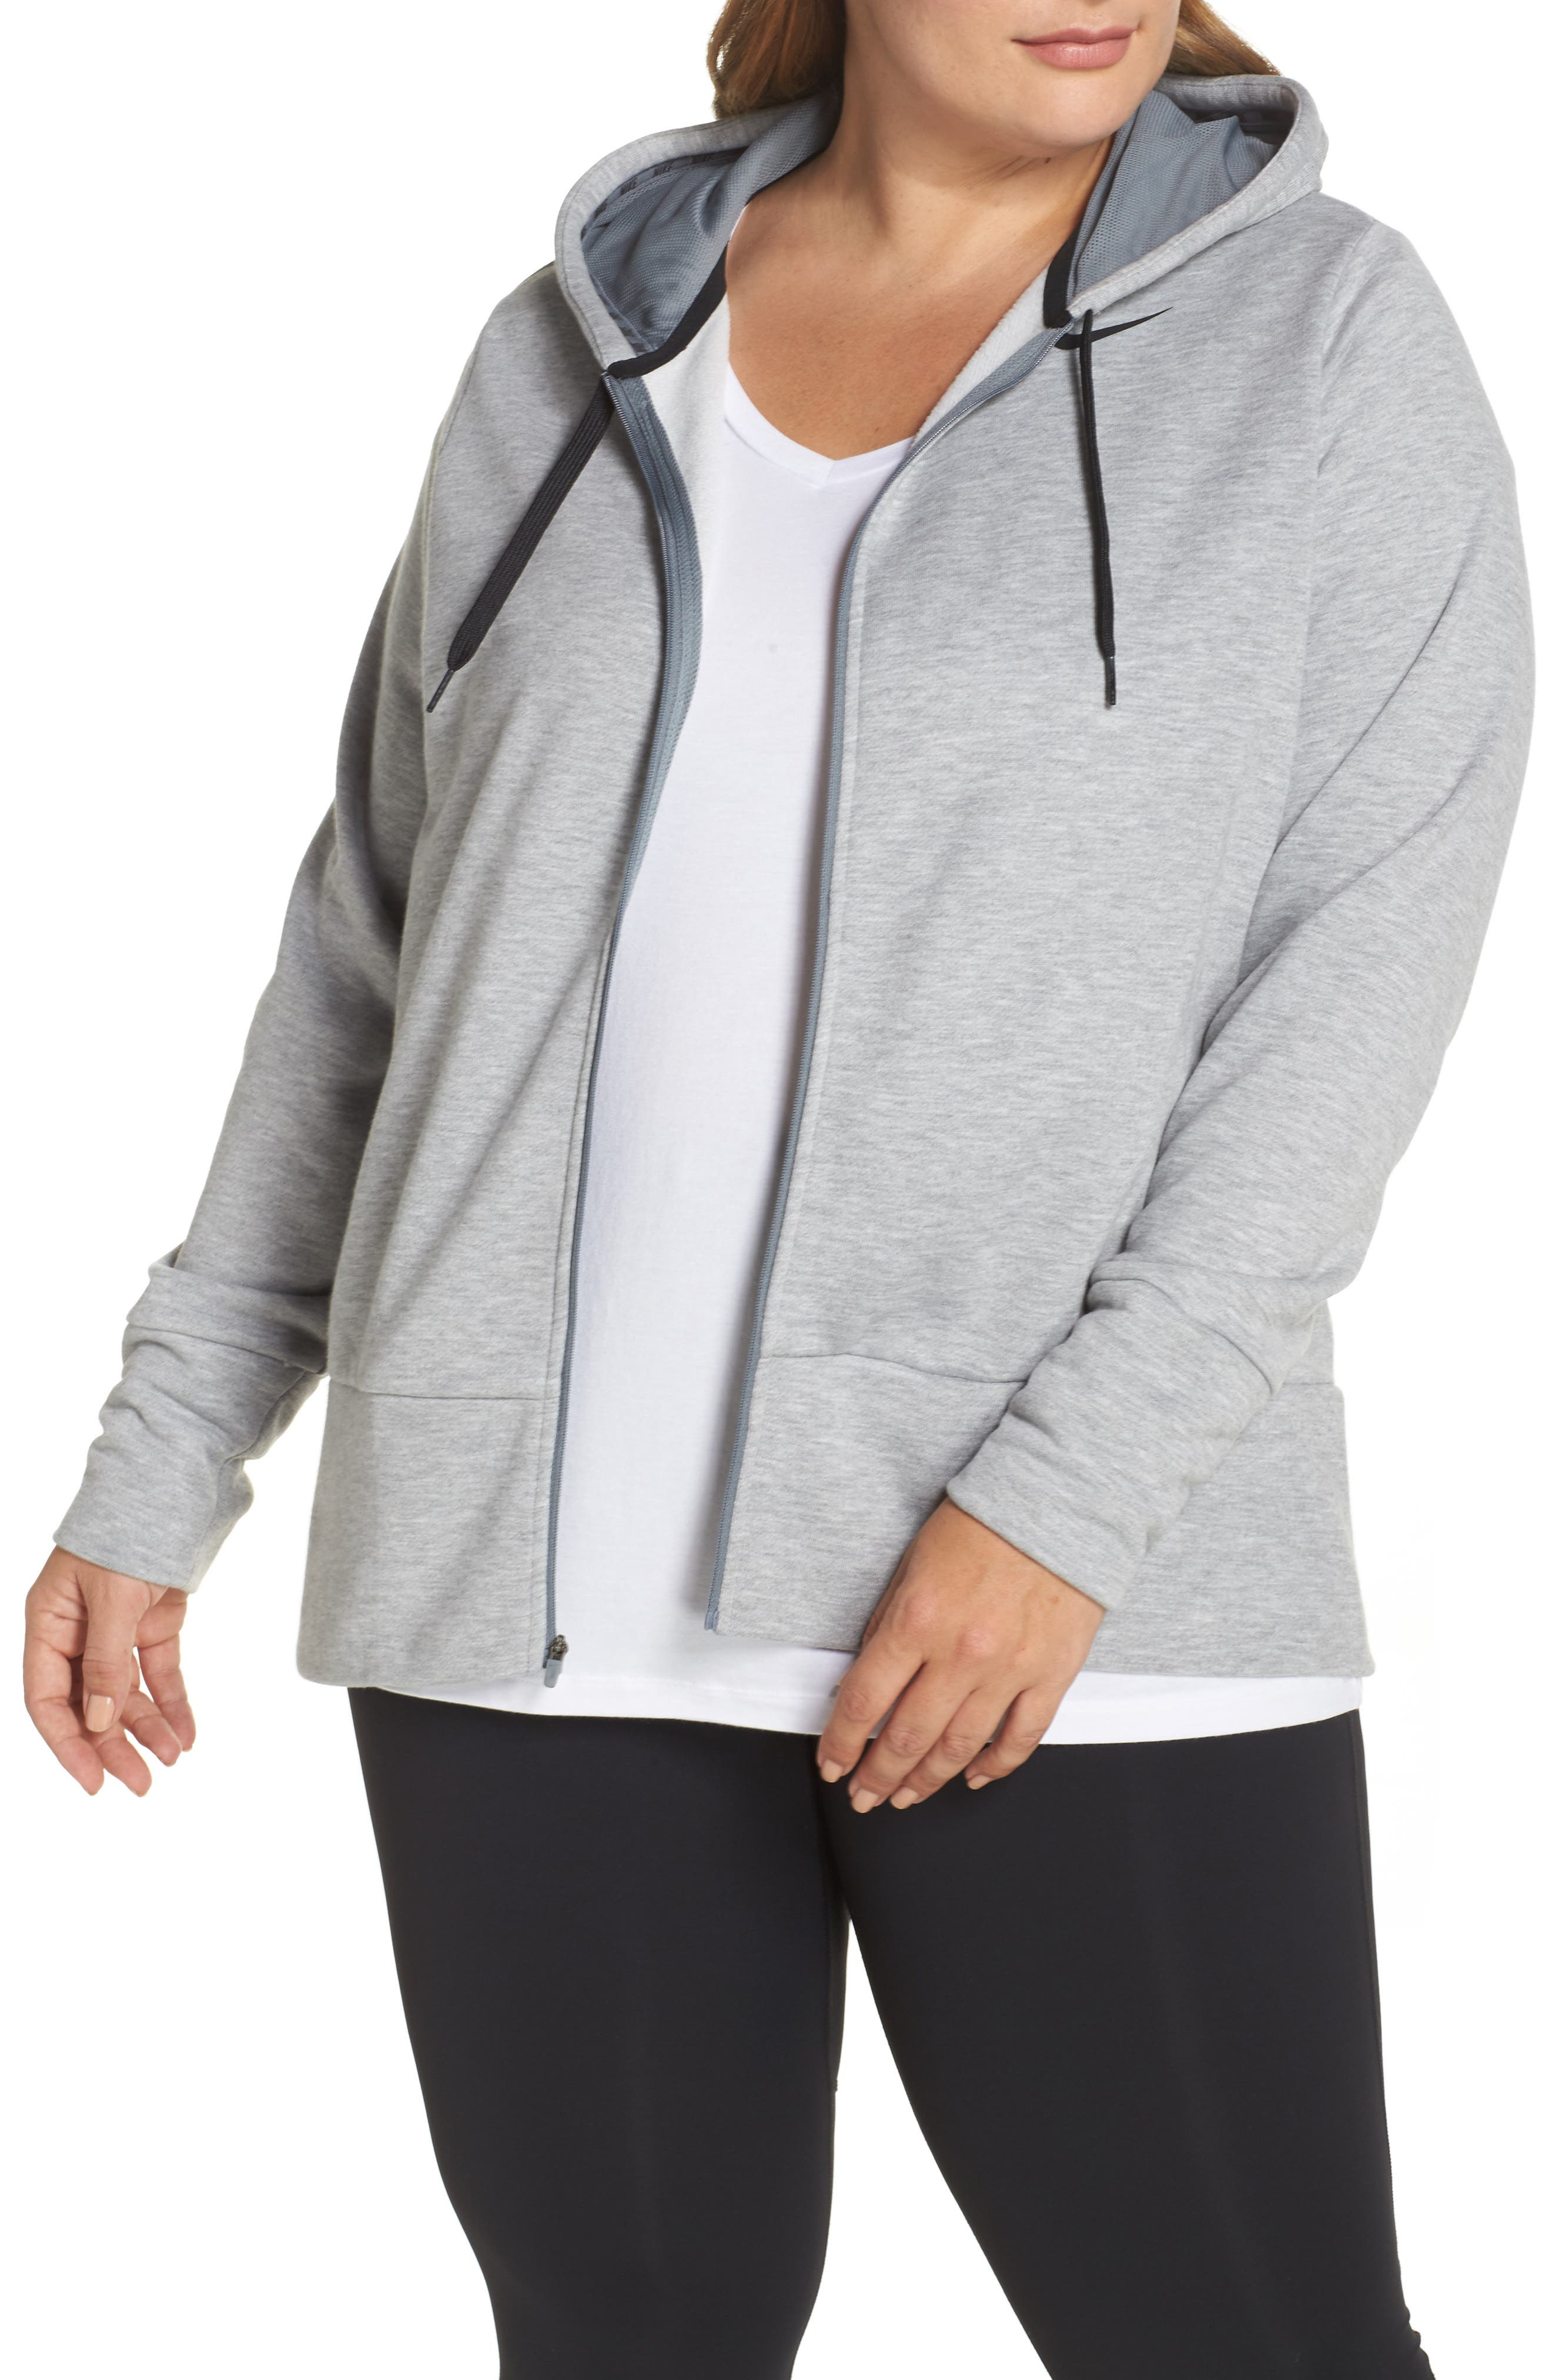 Main Image - Nike Dry-FIT Oversize Zip Hoodie (Plus Size)